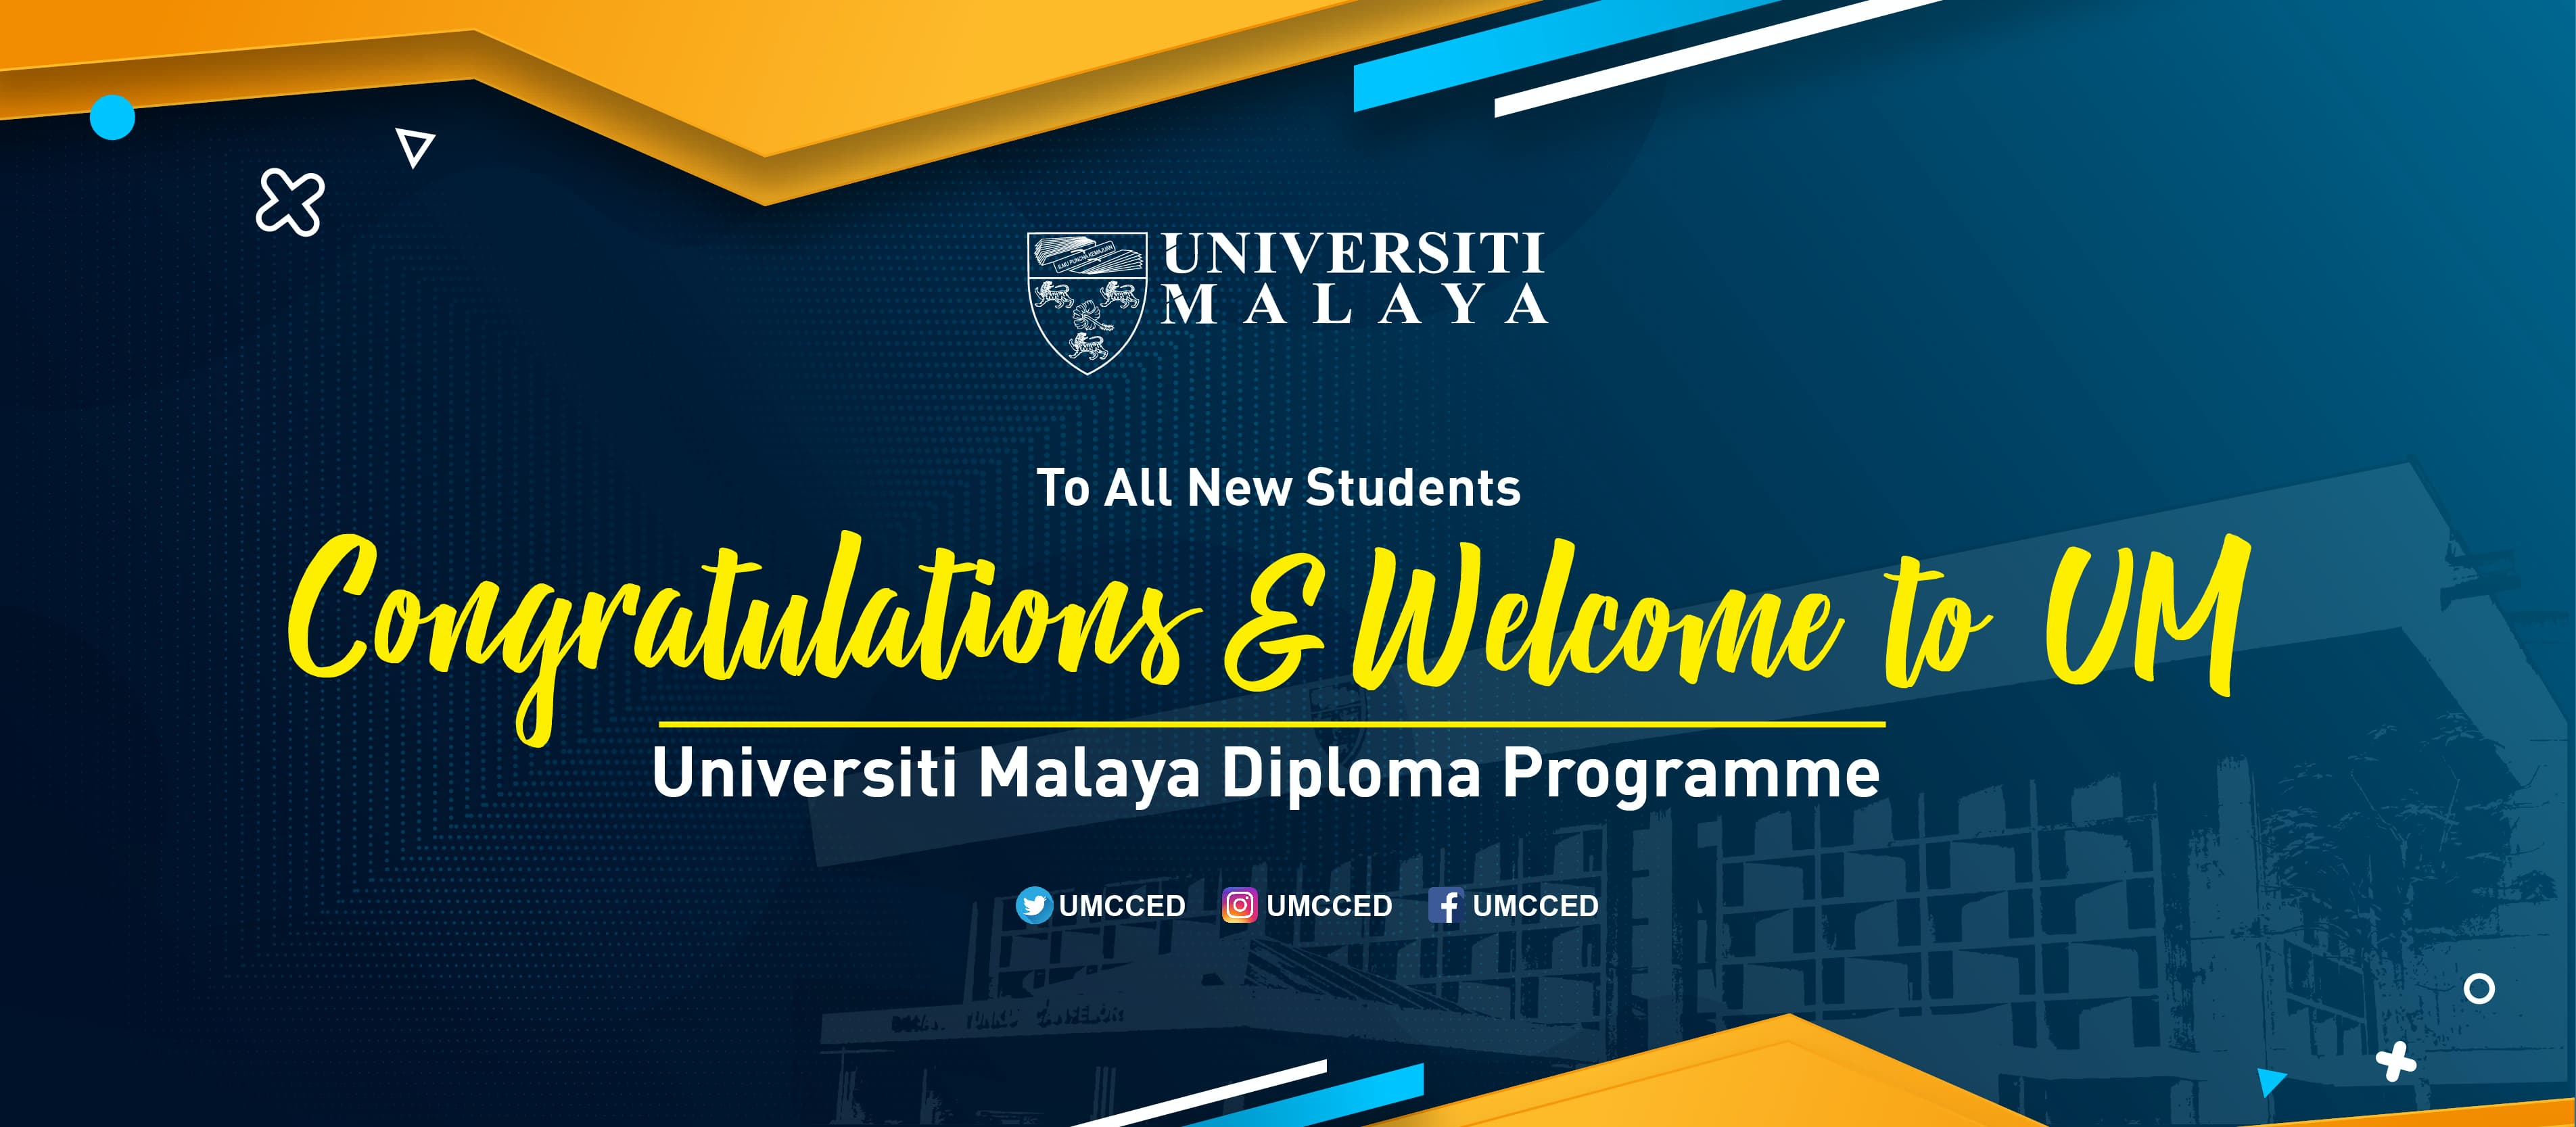 Web_Banner_Welcome_New_Student_Universiti_Malaya-02